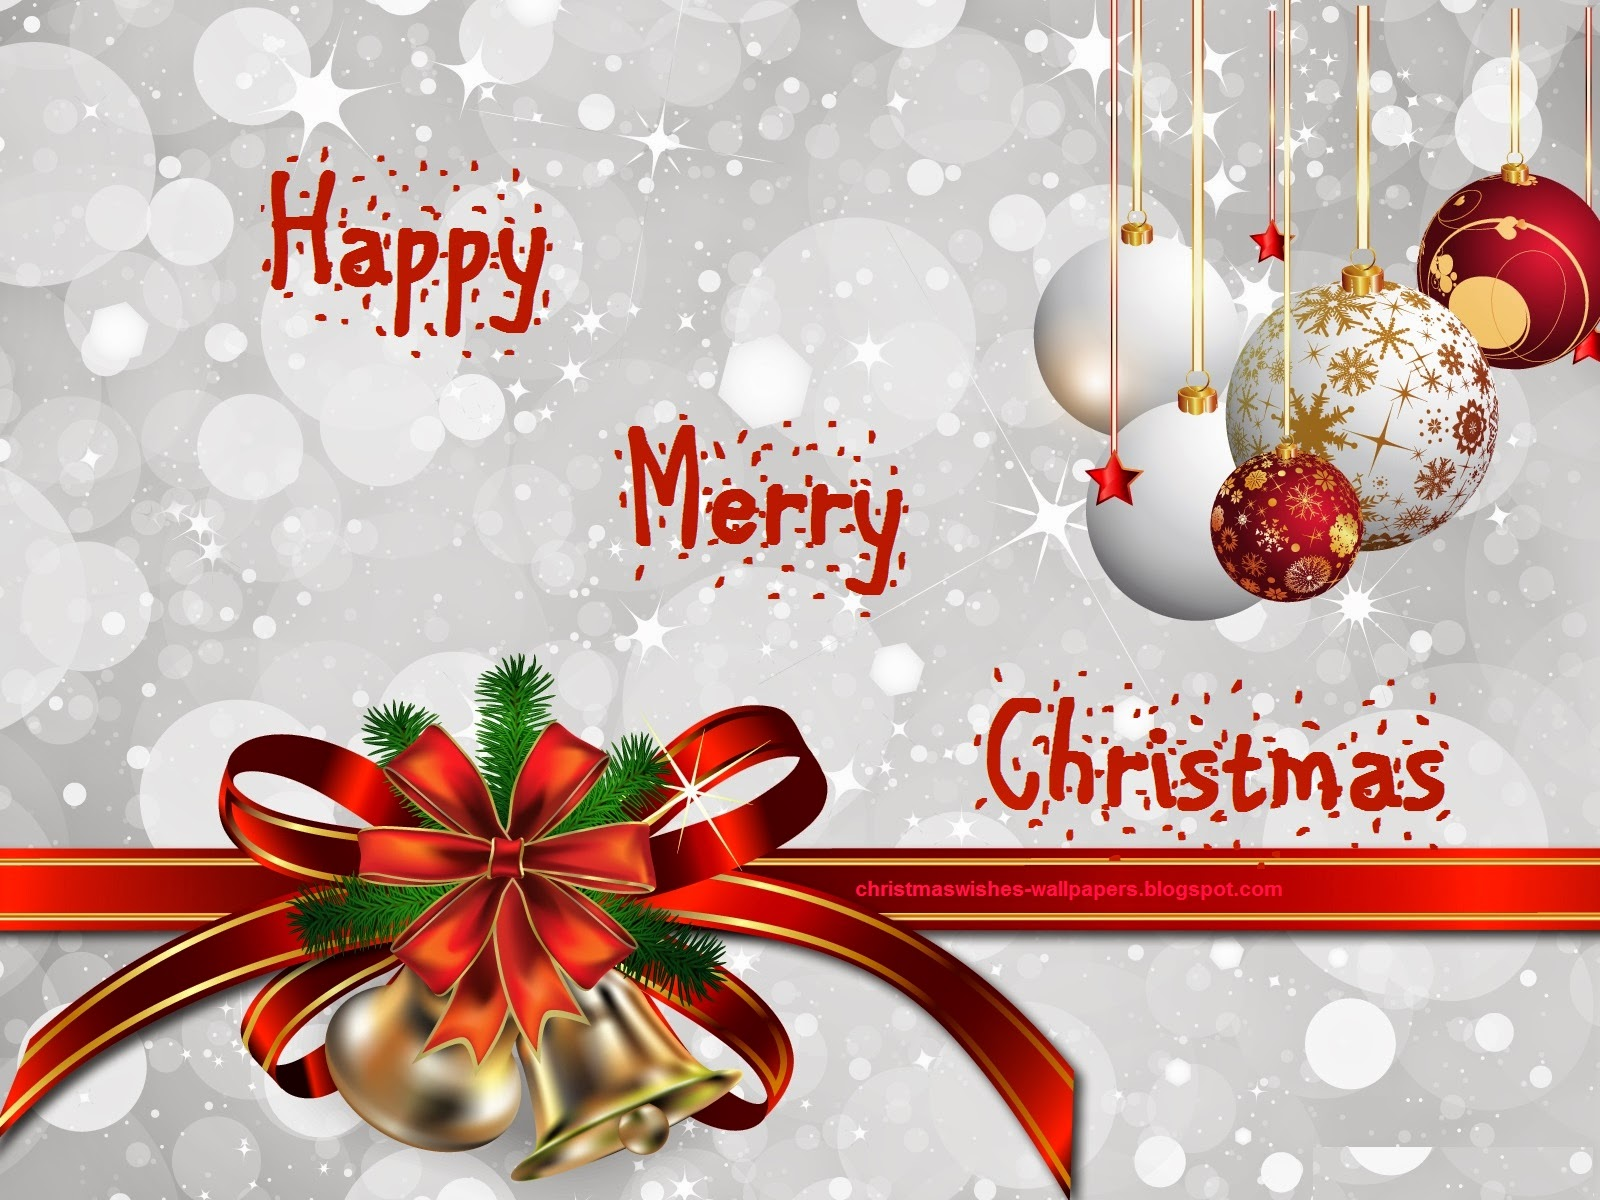 Happy Christmas Wallpaper Free Desktop